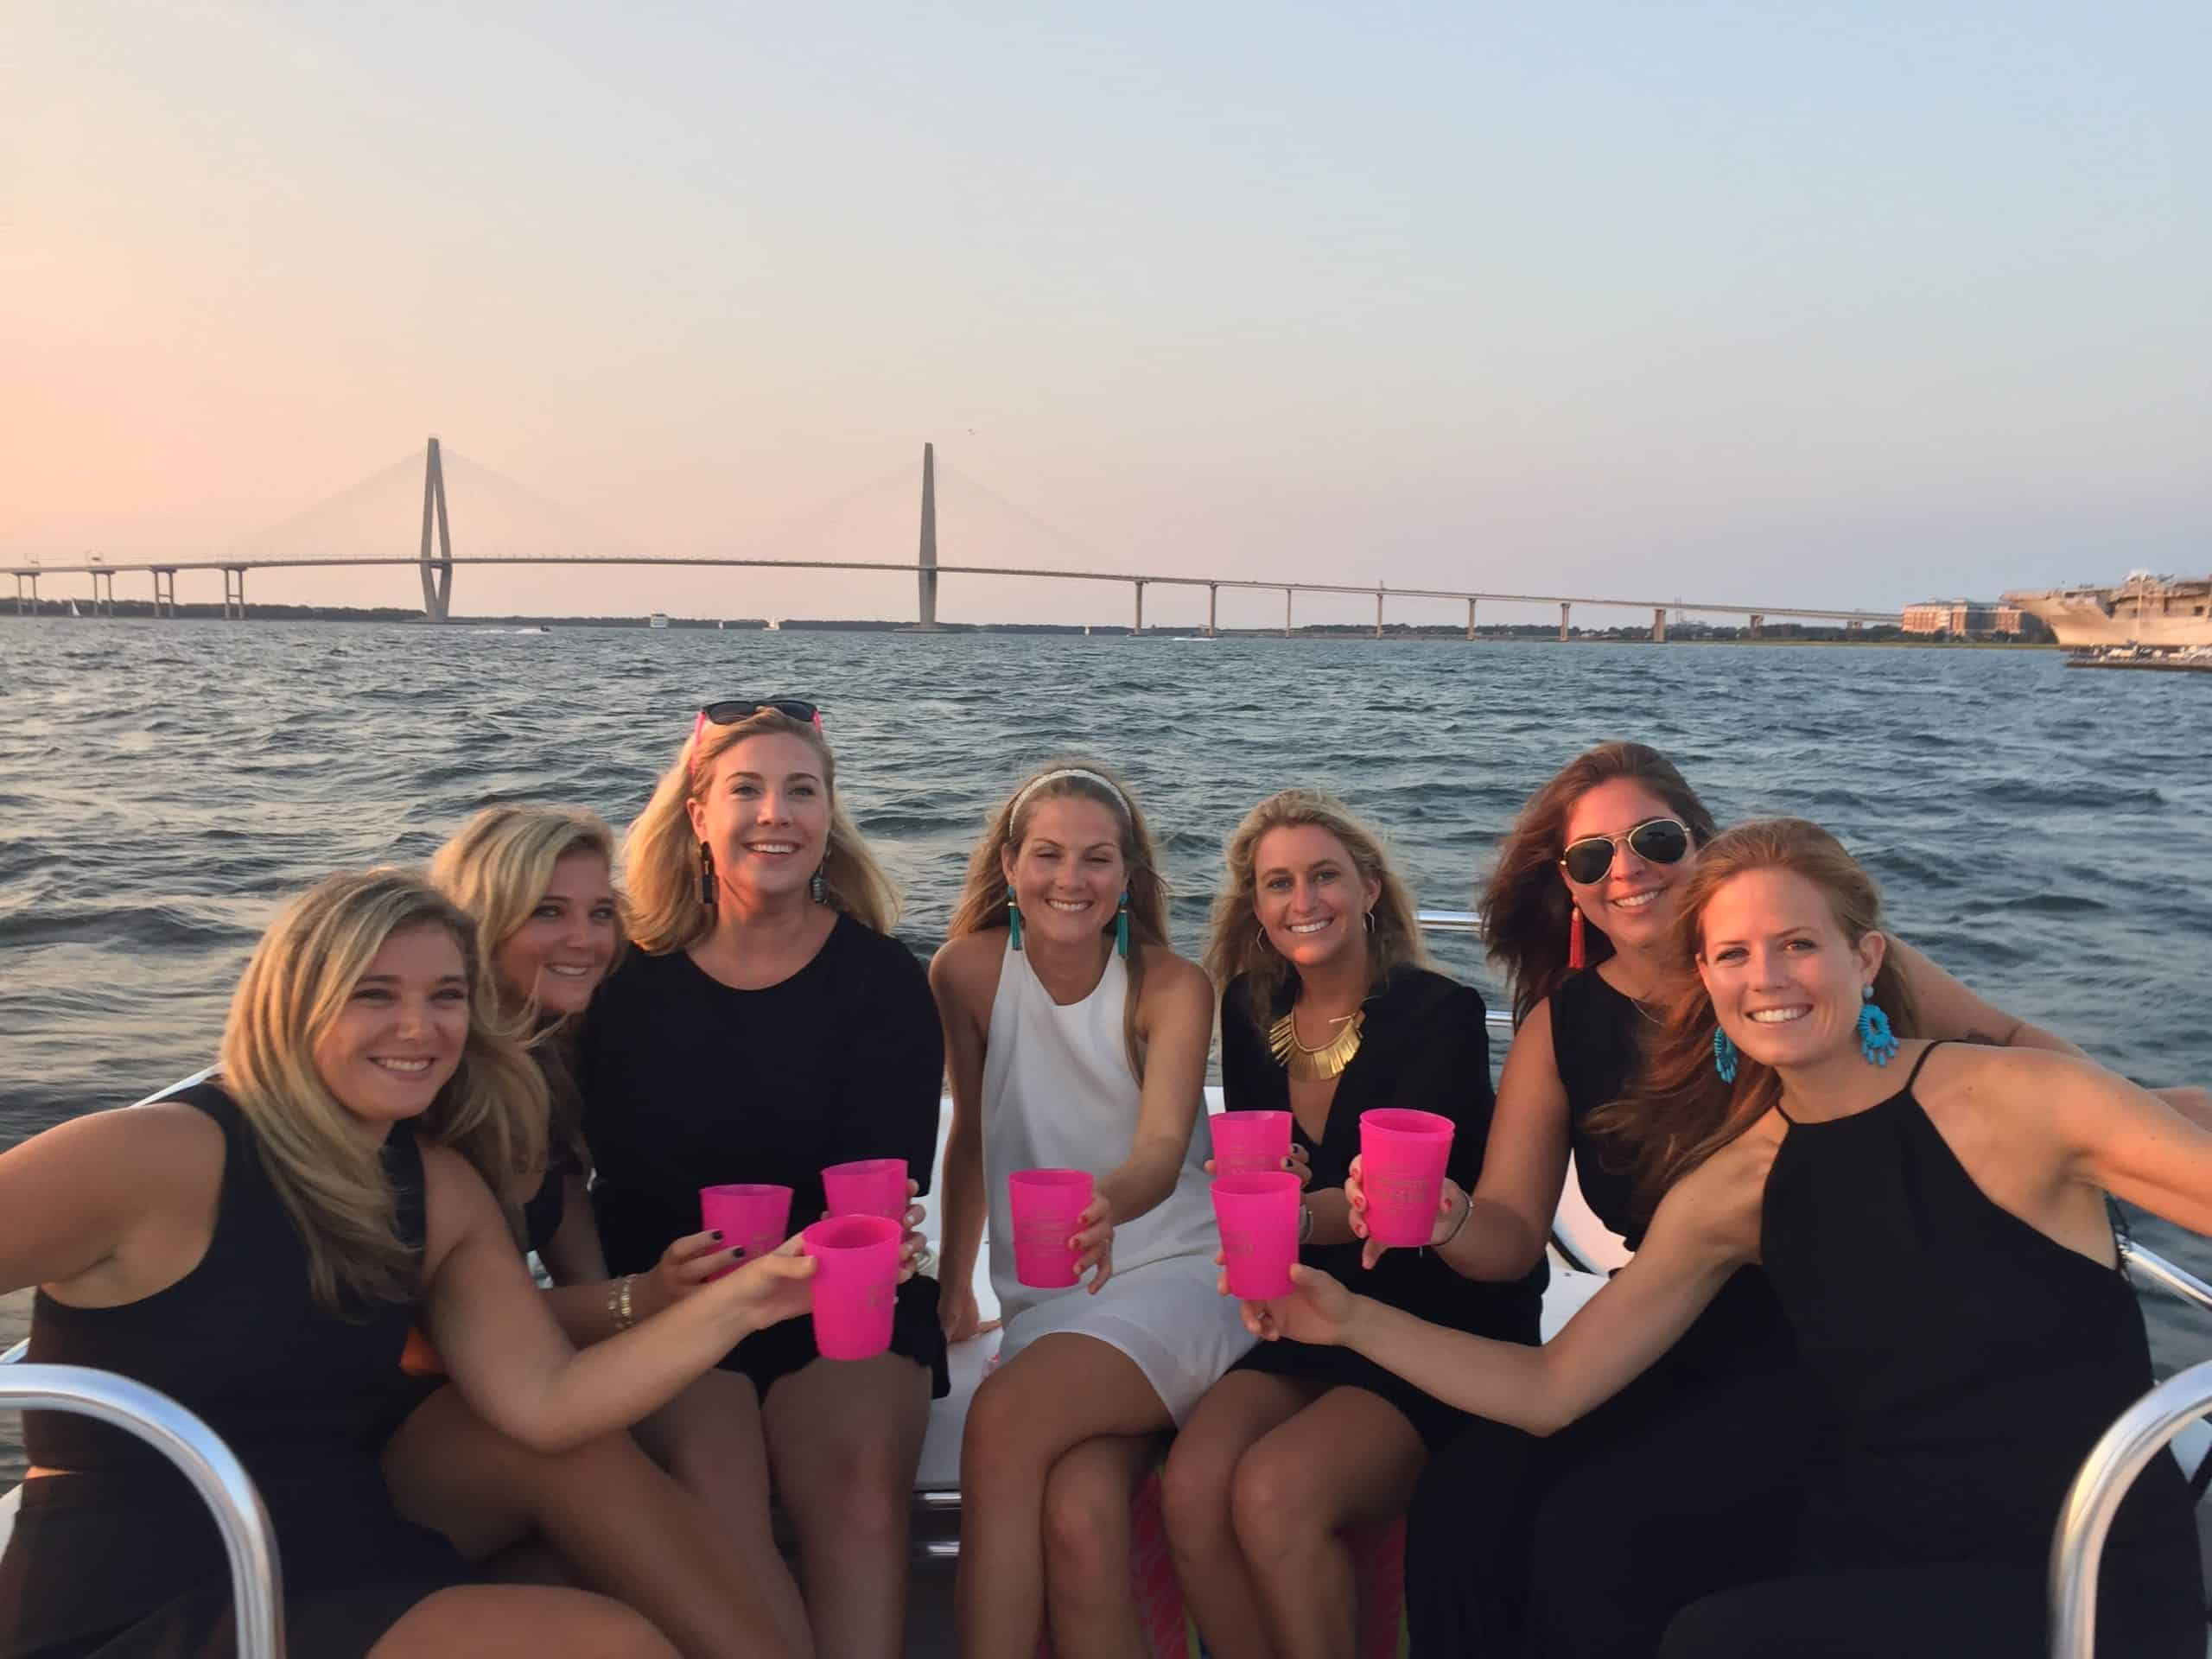 Group of women dressed up on the boat, toasting with their drinks. Private booze cruise